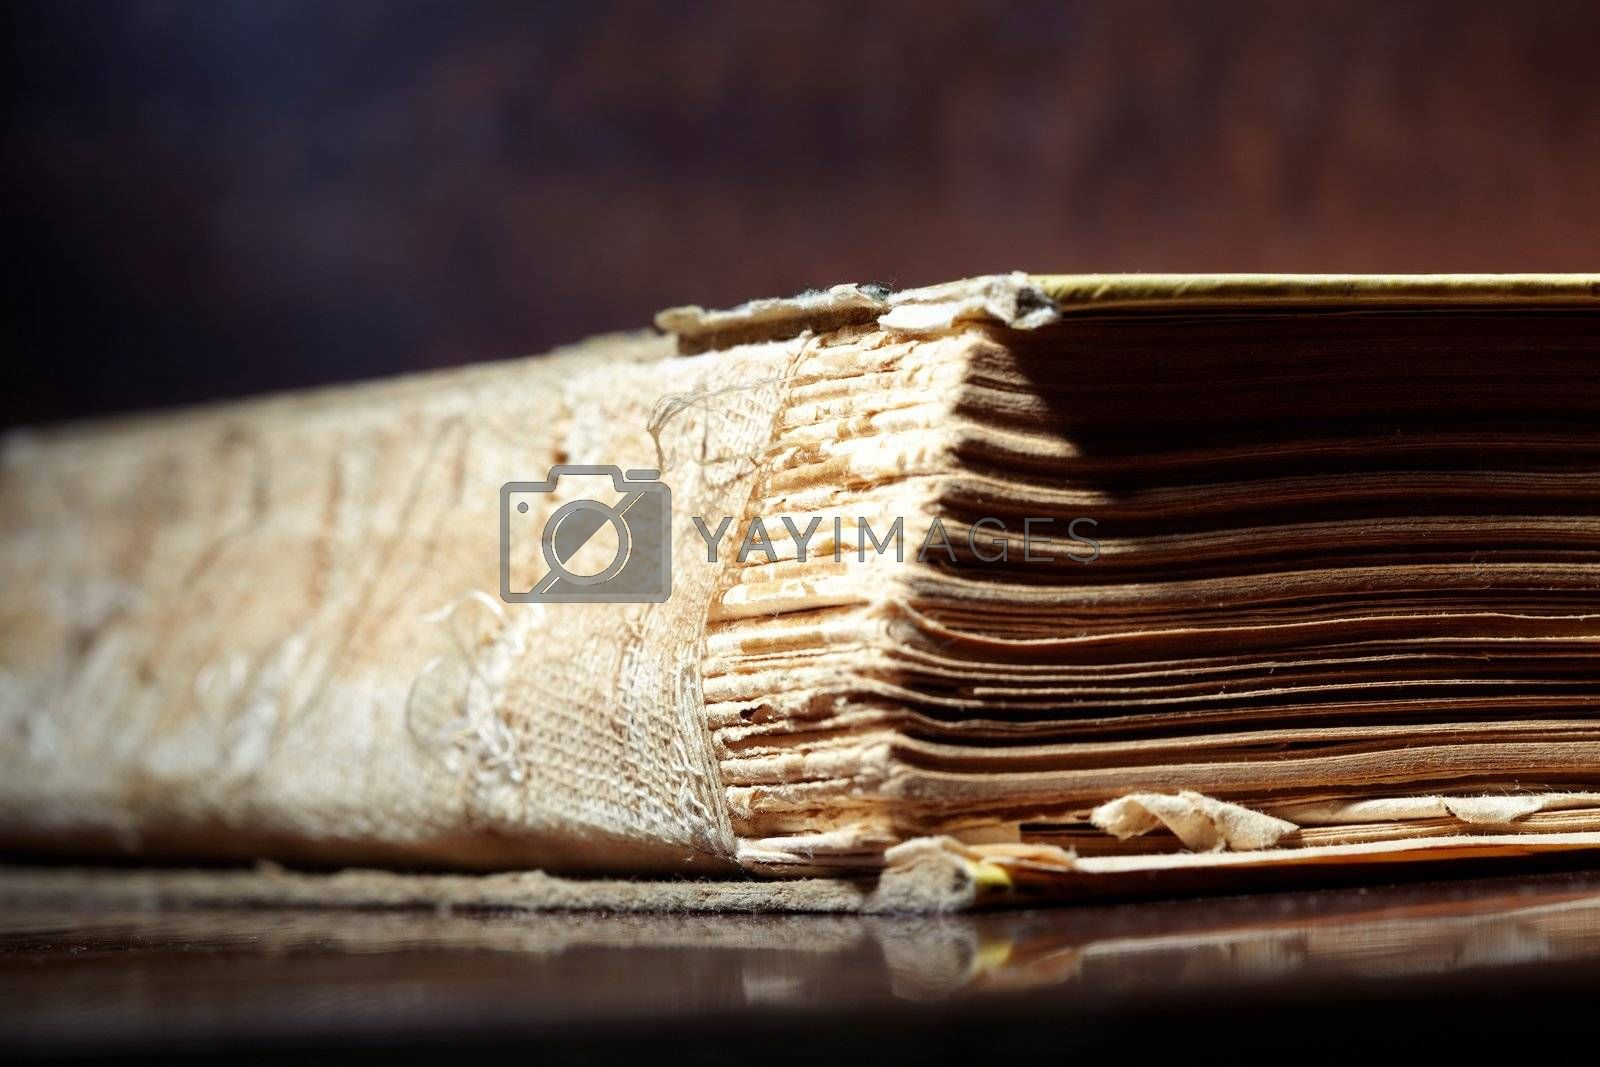 Damaged cover of the old book. Close-up photo with shallow depth of field for natural view